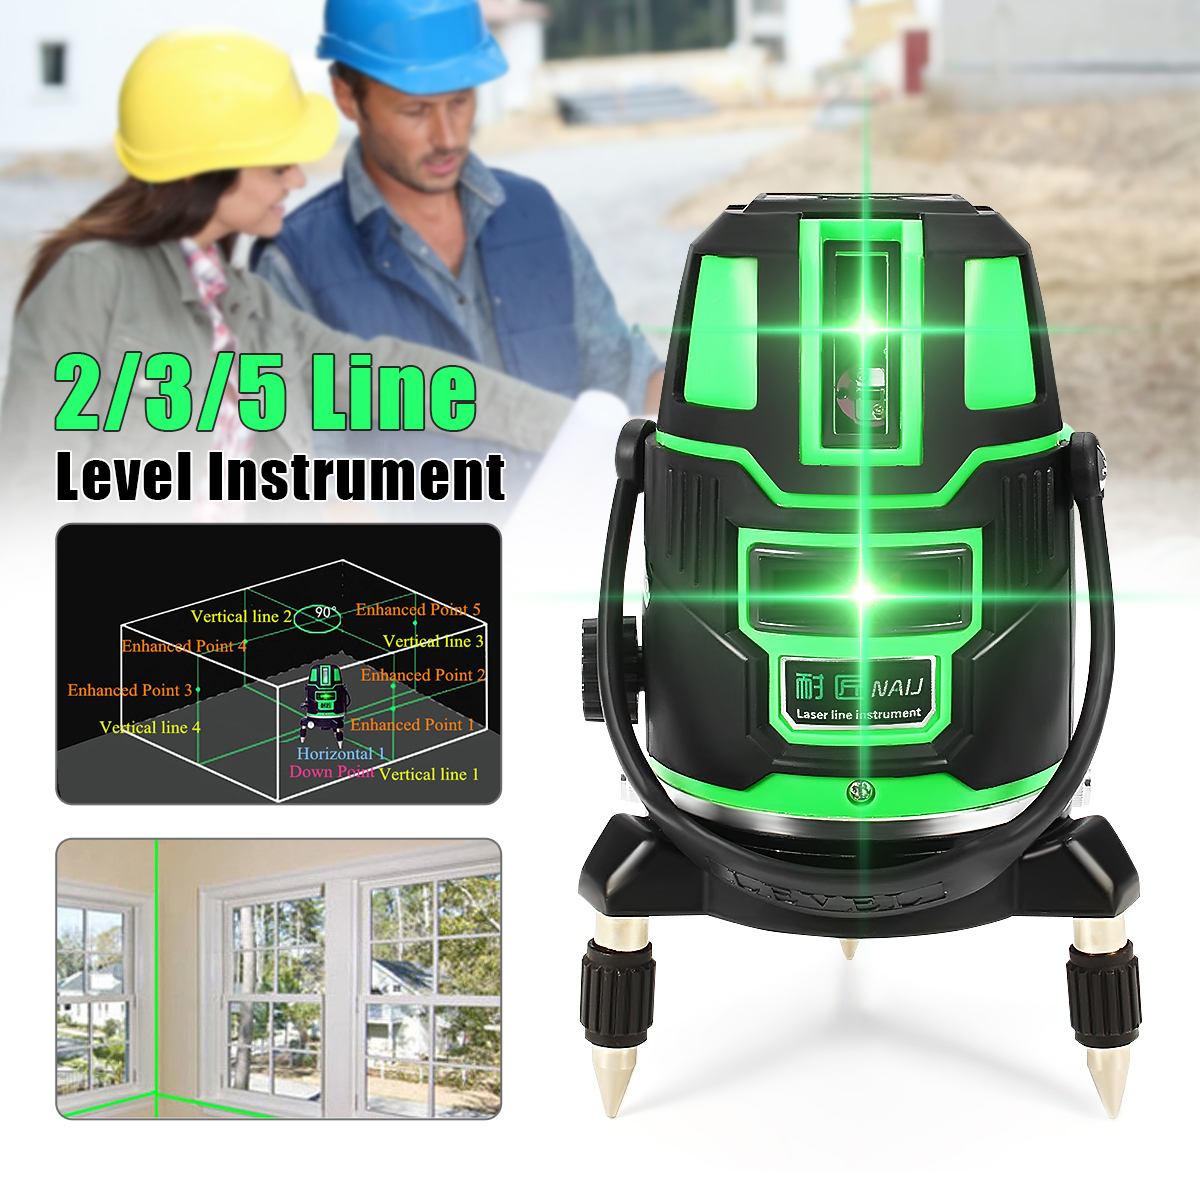 2/3/5 Cross Lines Indoor/Outdoor Green Laser Level Self Leveling 360 Rotary Measure Tool Set US Plug Radius Alternating Direct